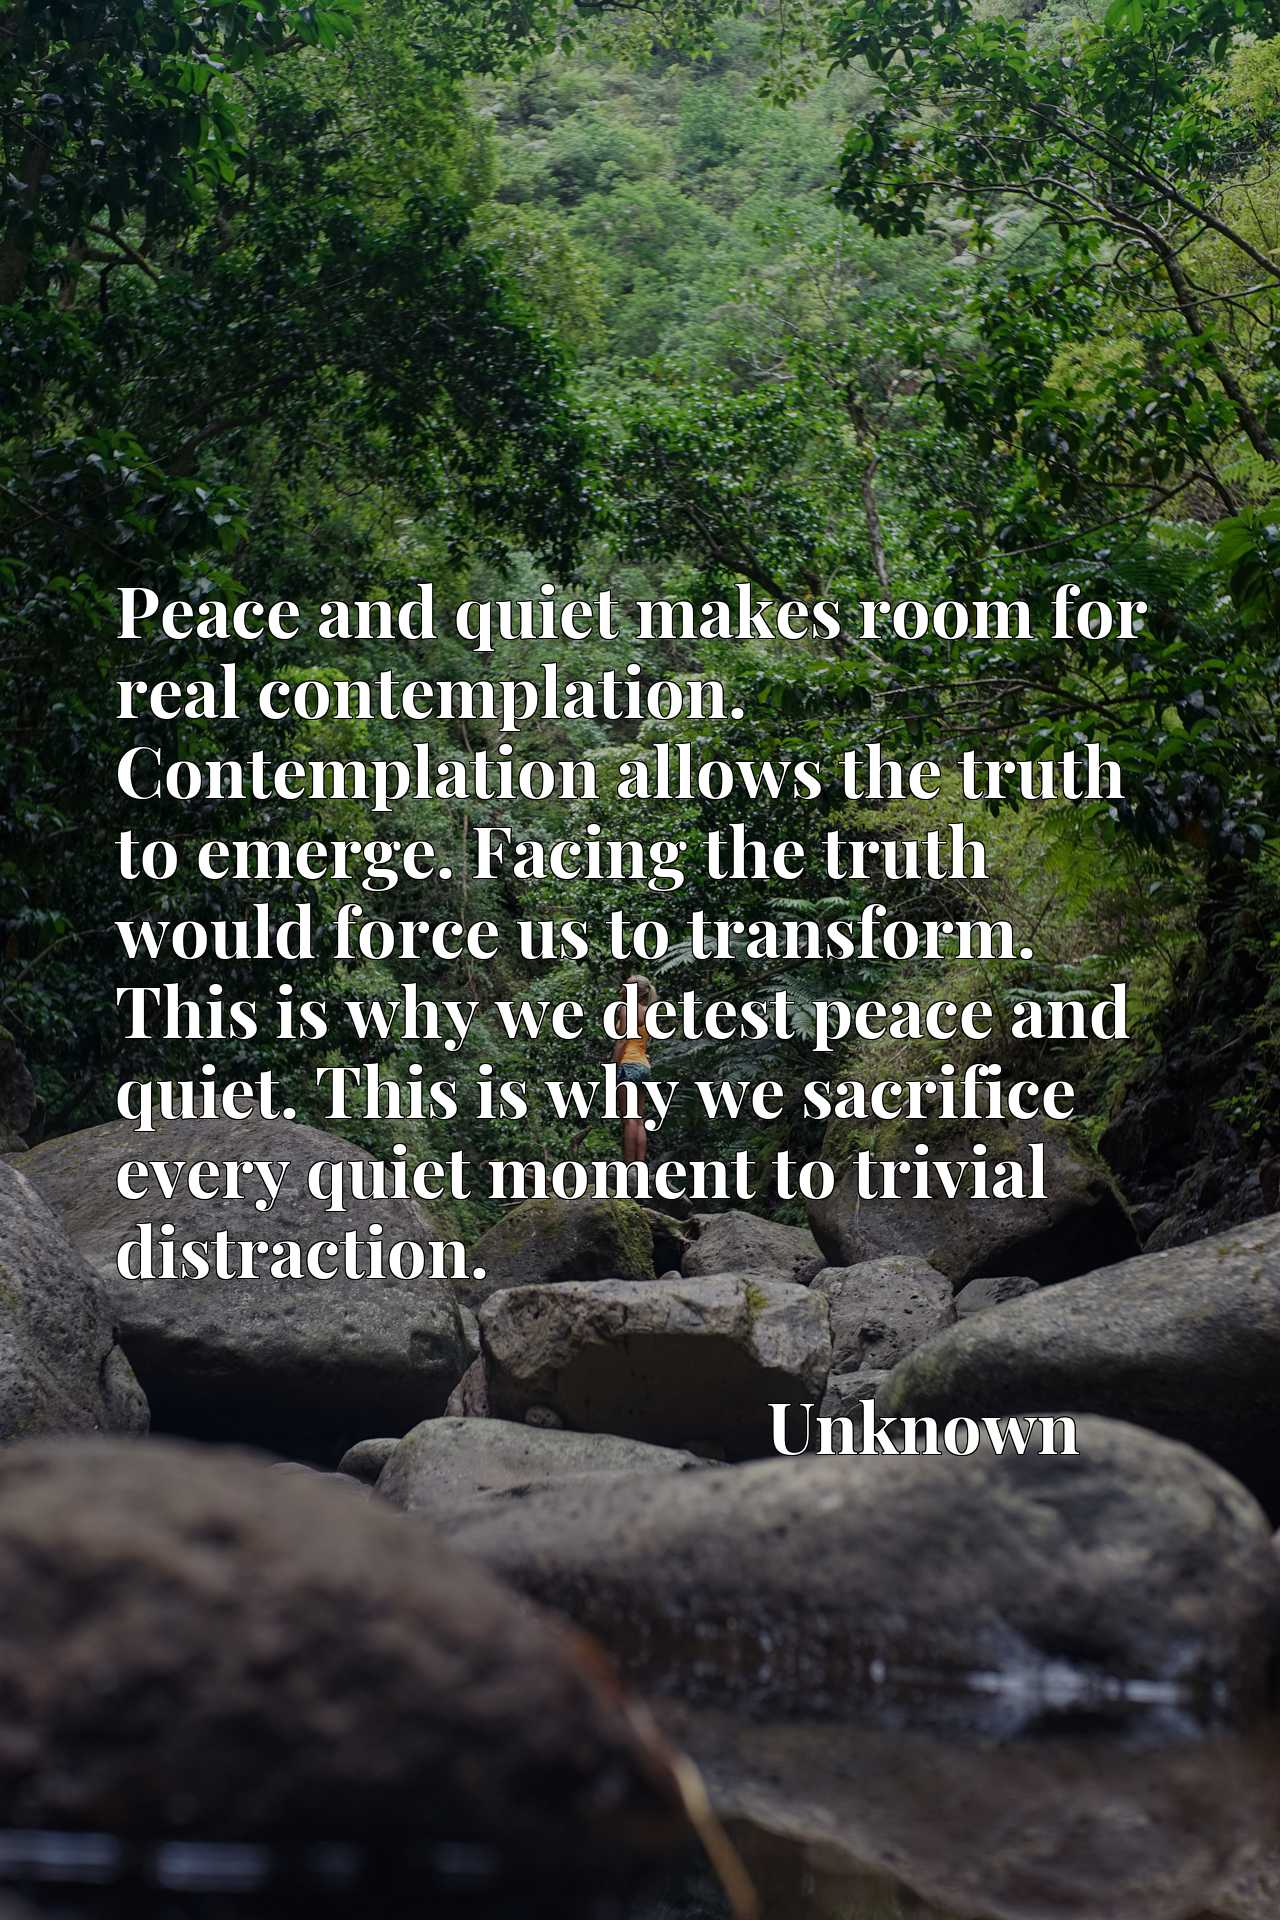 Peace and quiet makes room for real contemplation. Contemplation allows the truth to emerge. Facing the truth would force us to transform. This is why we detest peace and quiet. This is why we sacrifice every quiet moment to trivial distraction.